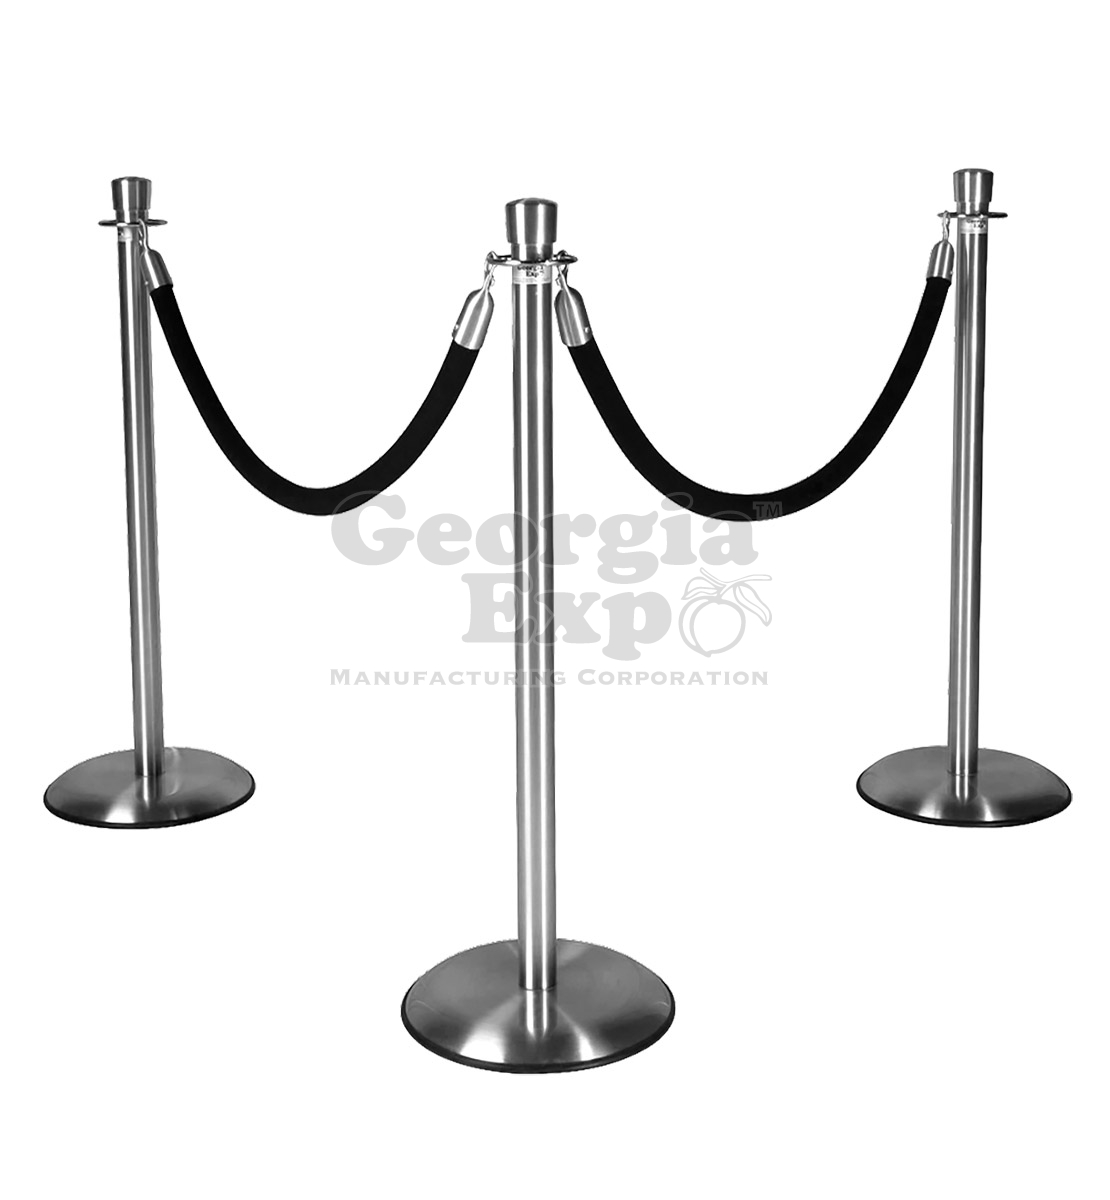 Polished Chrome Lobby Stanchions Stanchions Georgia Expo